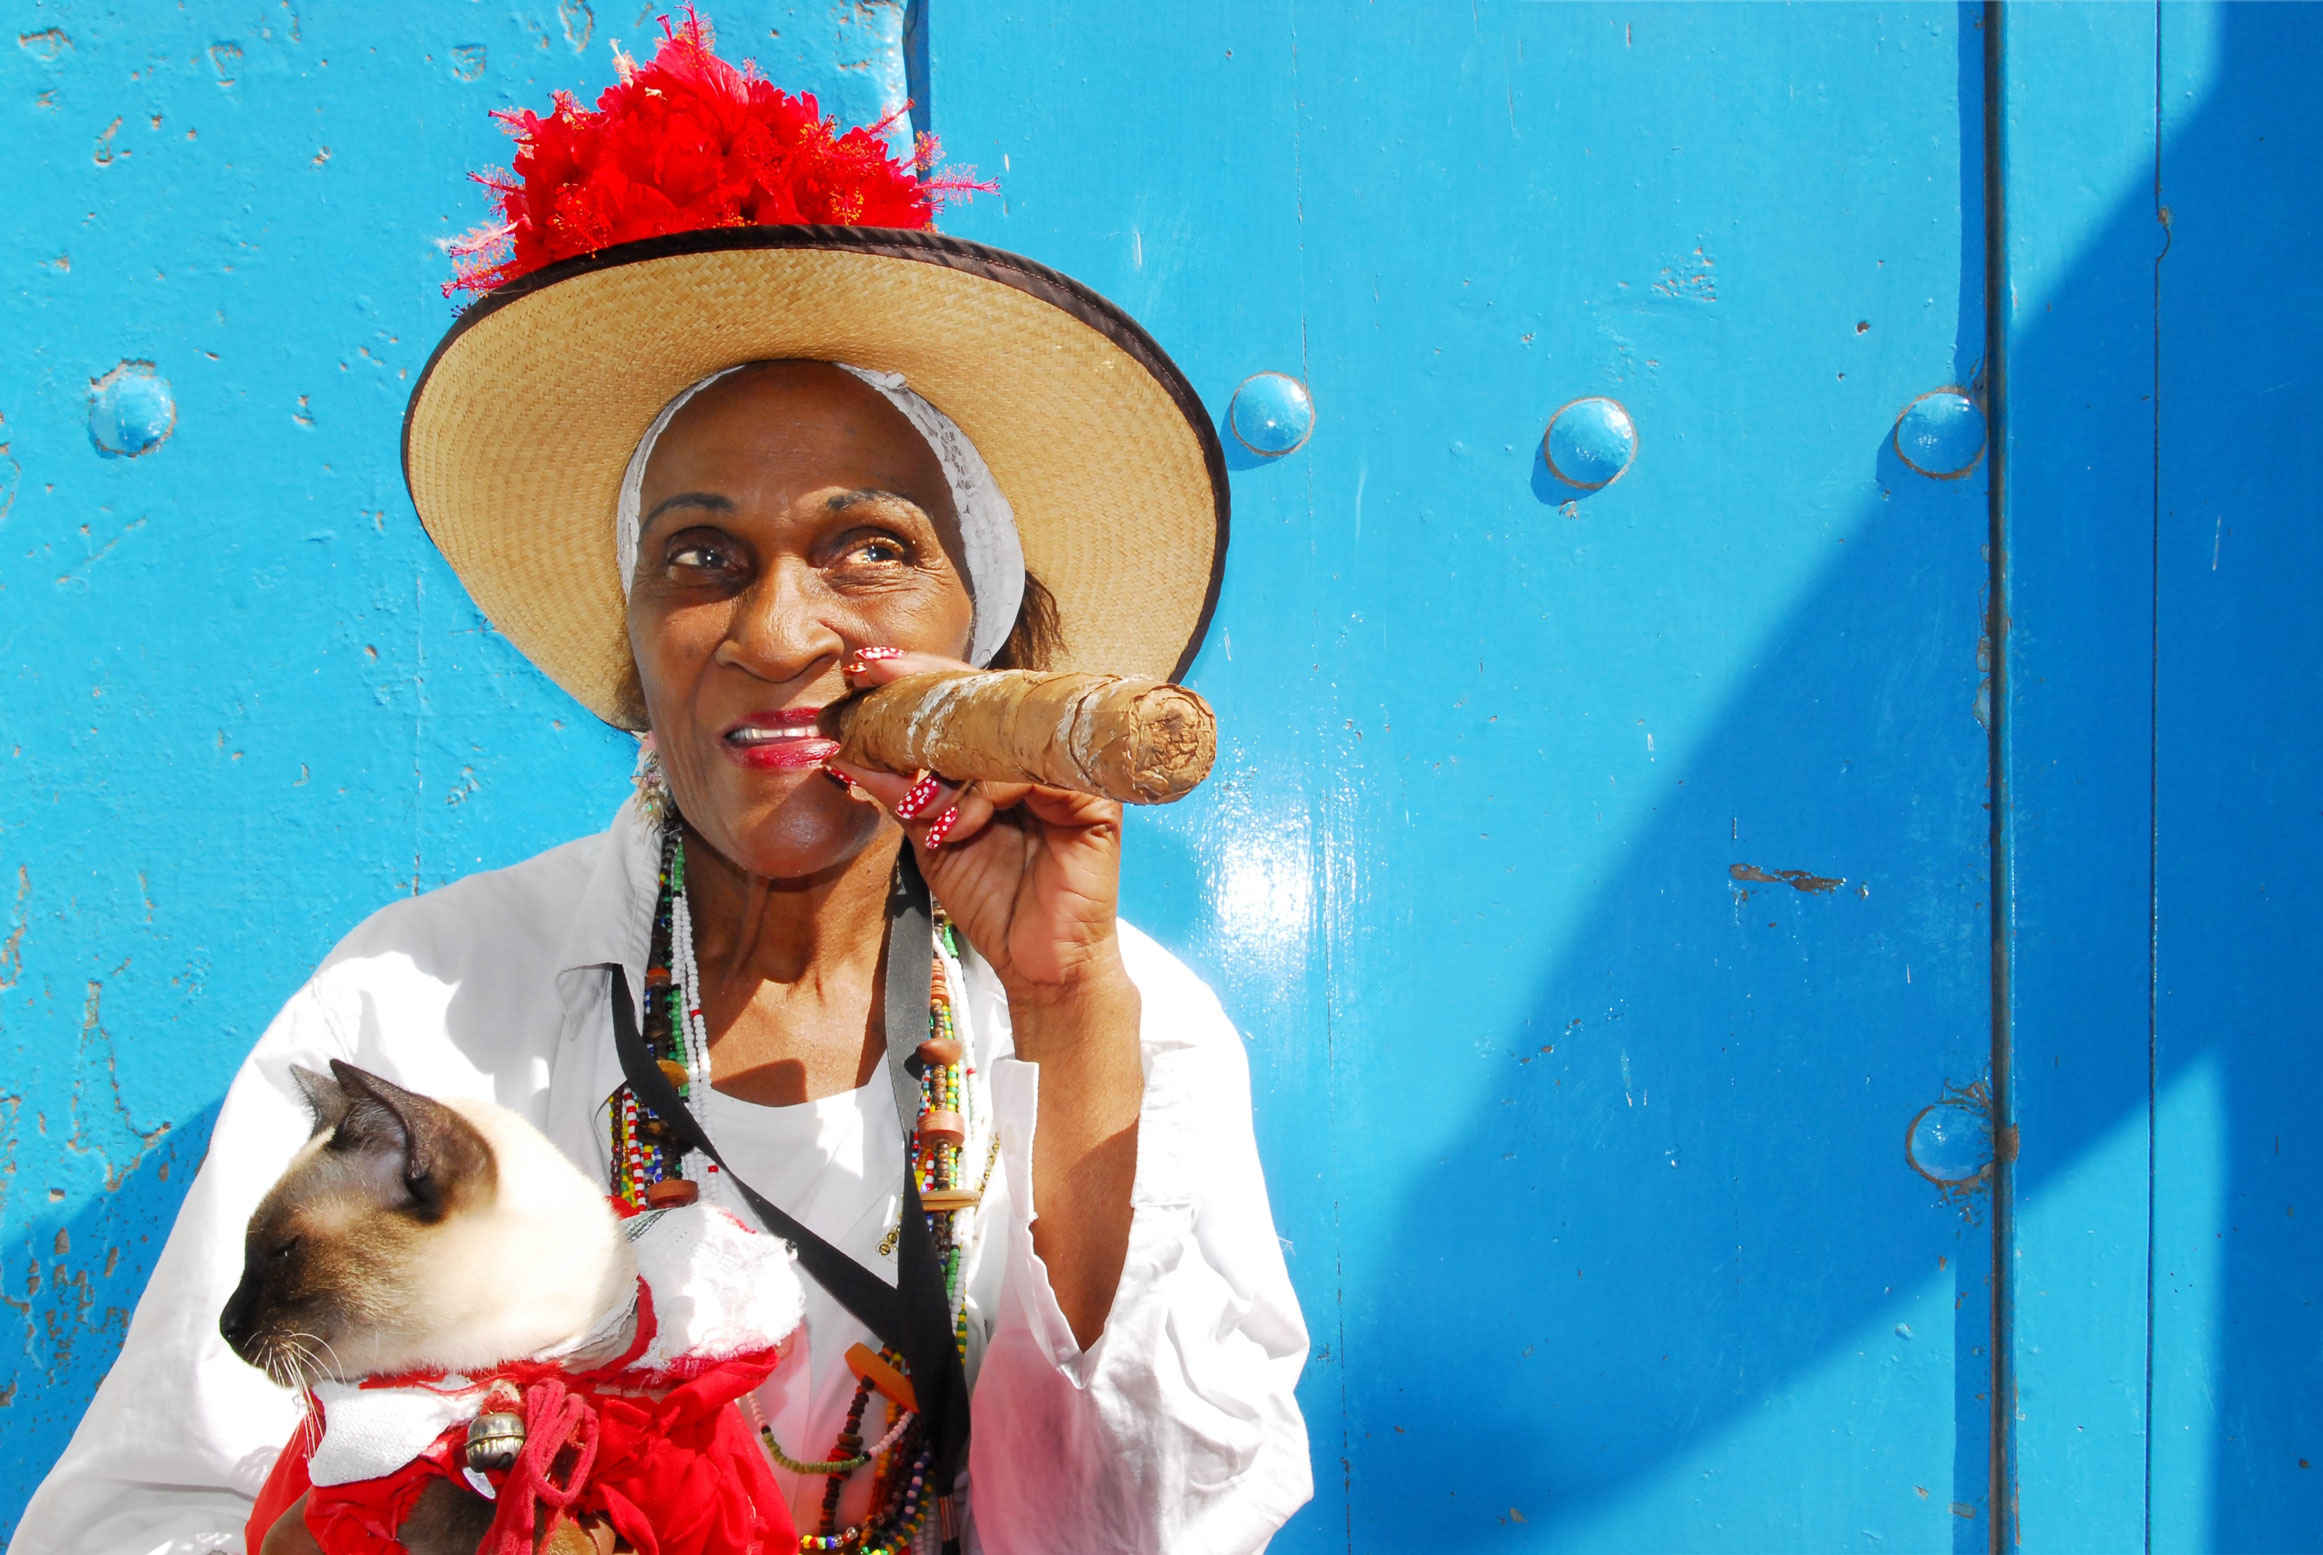 lady with a cuban cigar central america hero image